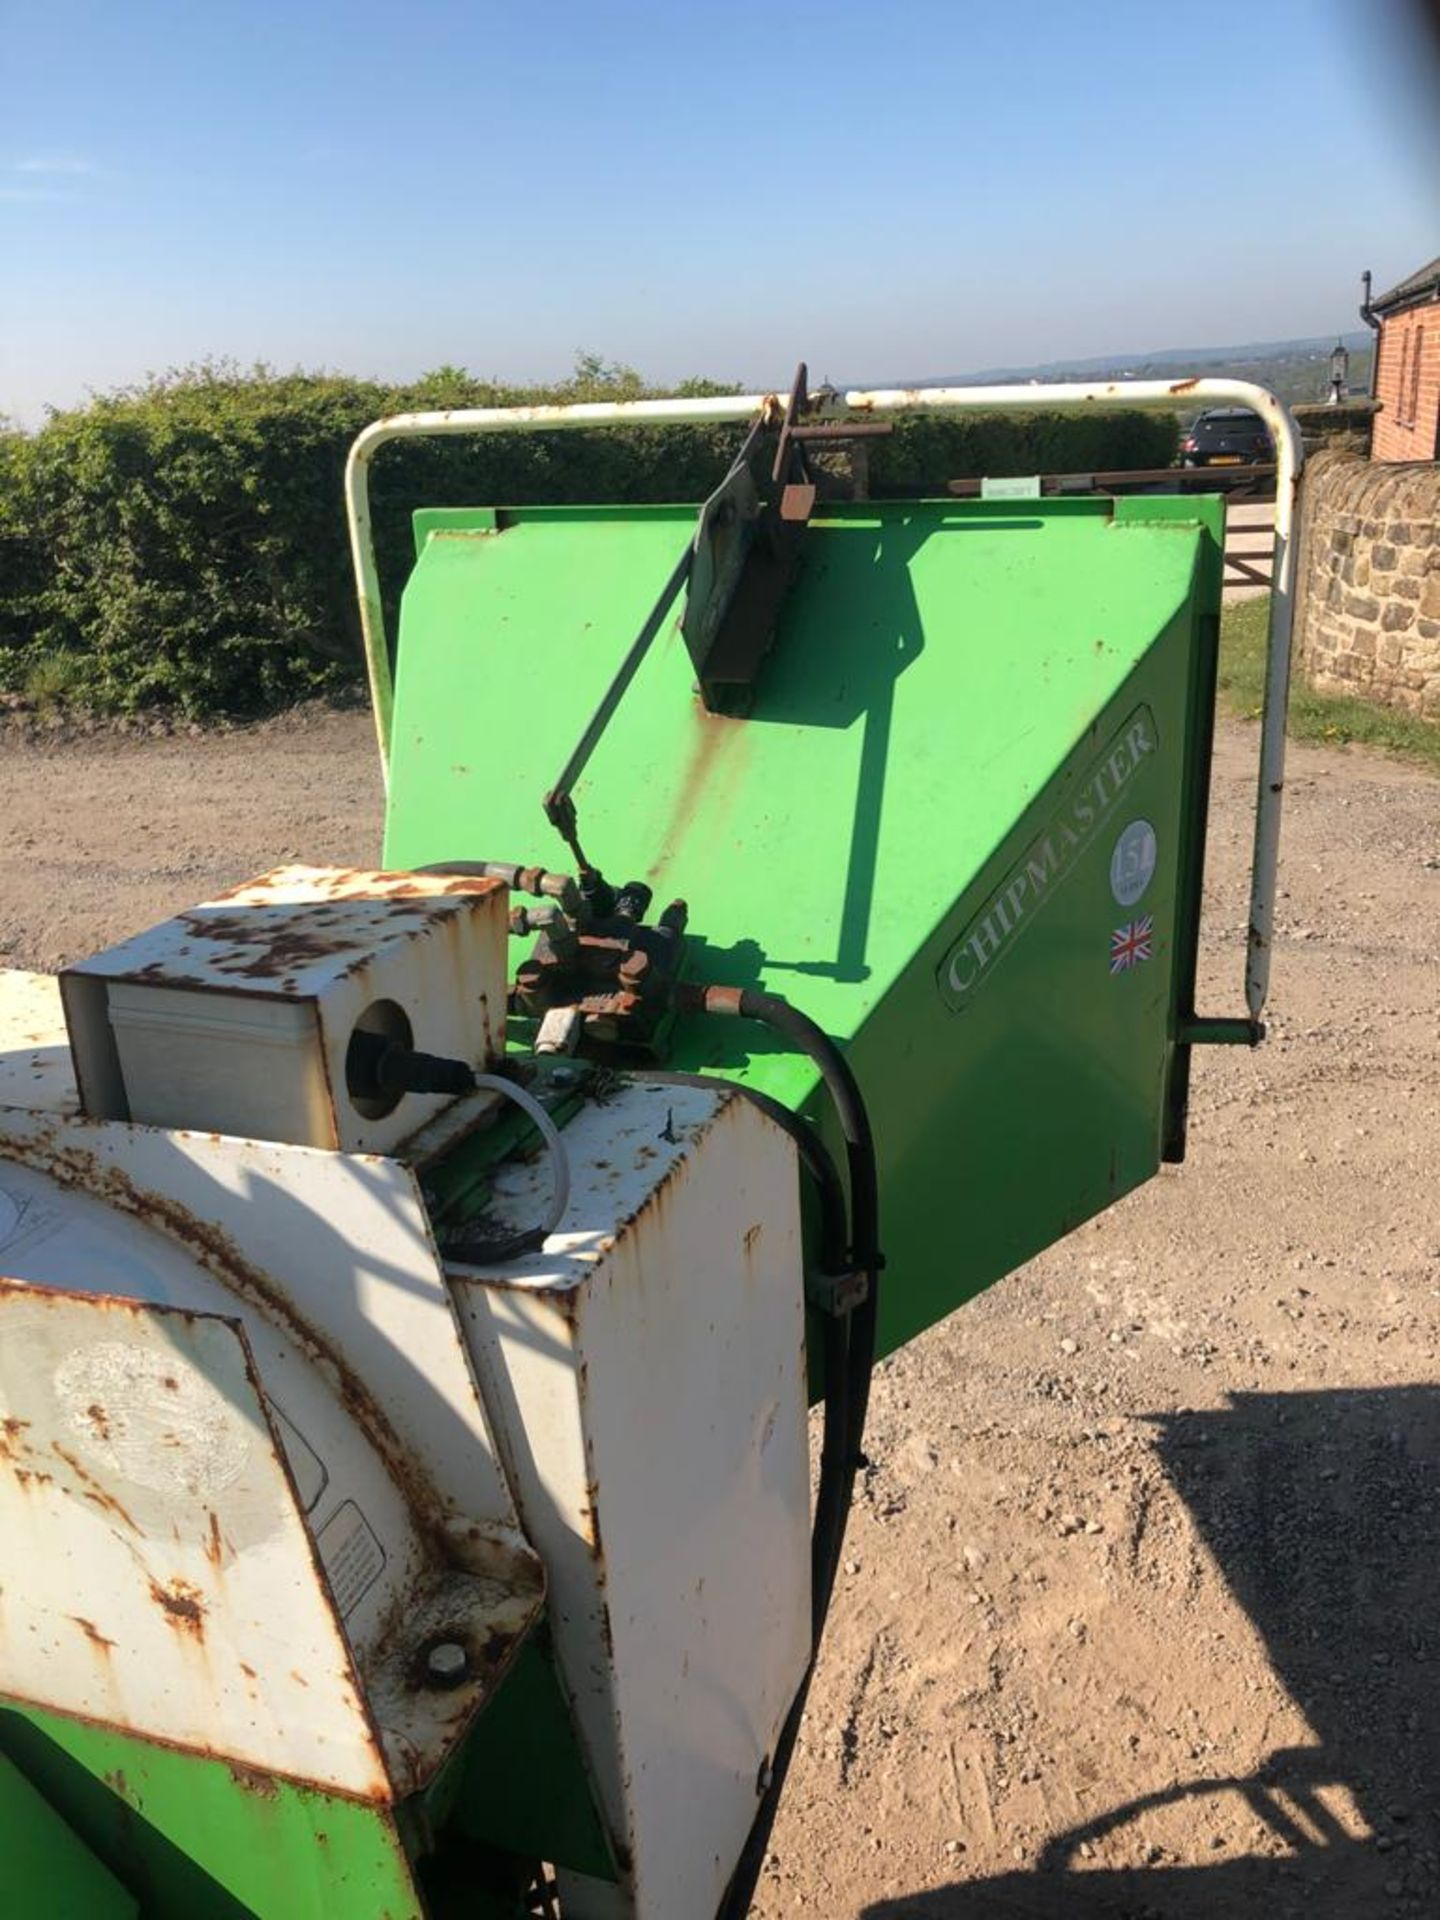 GREENMECH WOOD CHIPPER, 3 POINT LINKAGE, WORKS AND CUTS *PLUS VAT* - Image 6 of 8